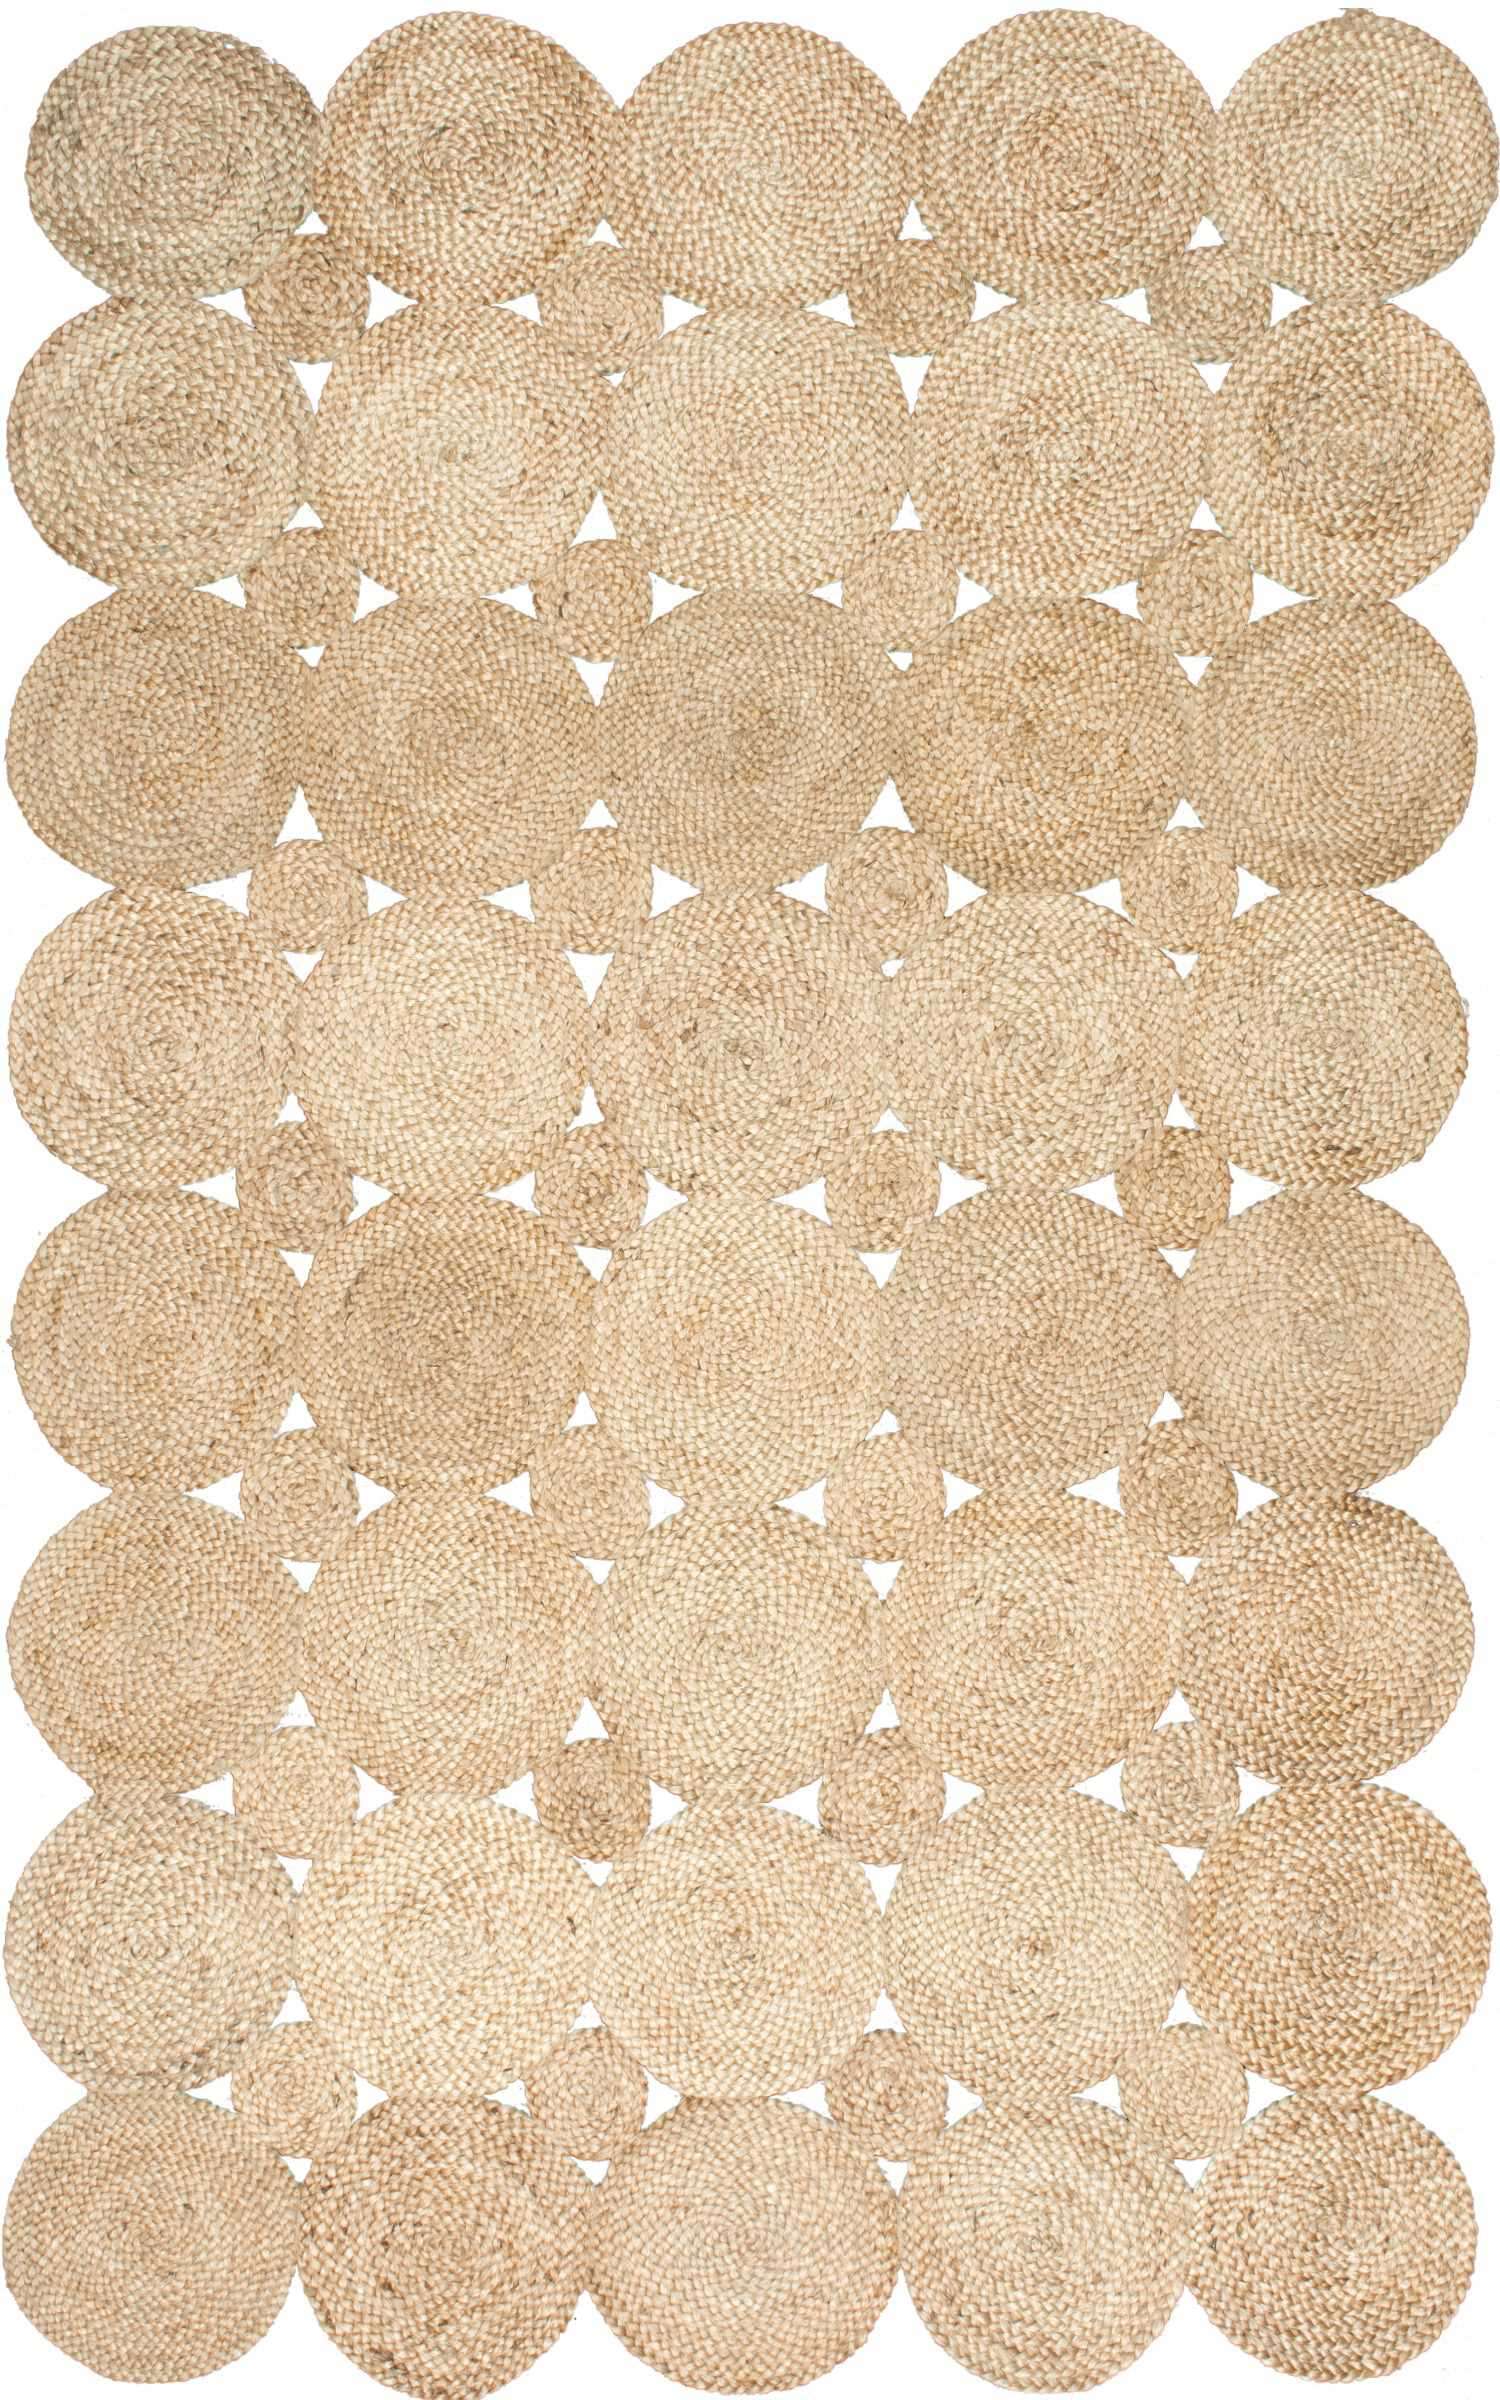 Designer Dupe Jute Circles Rug The Pursuit Of Style